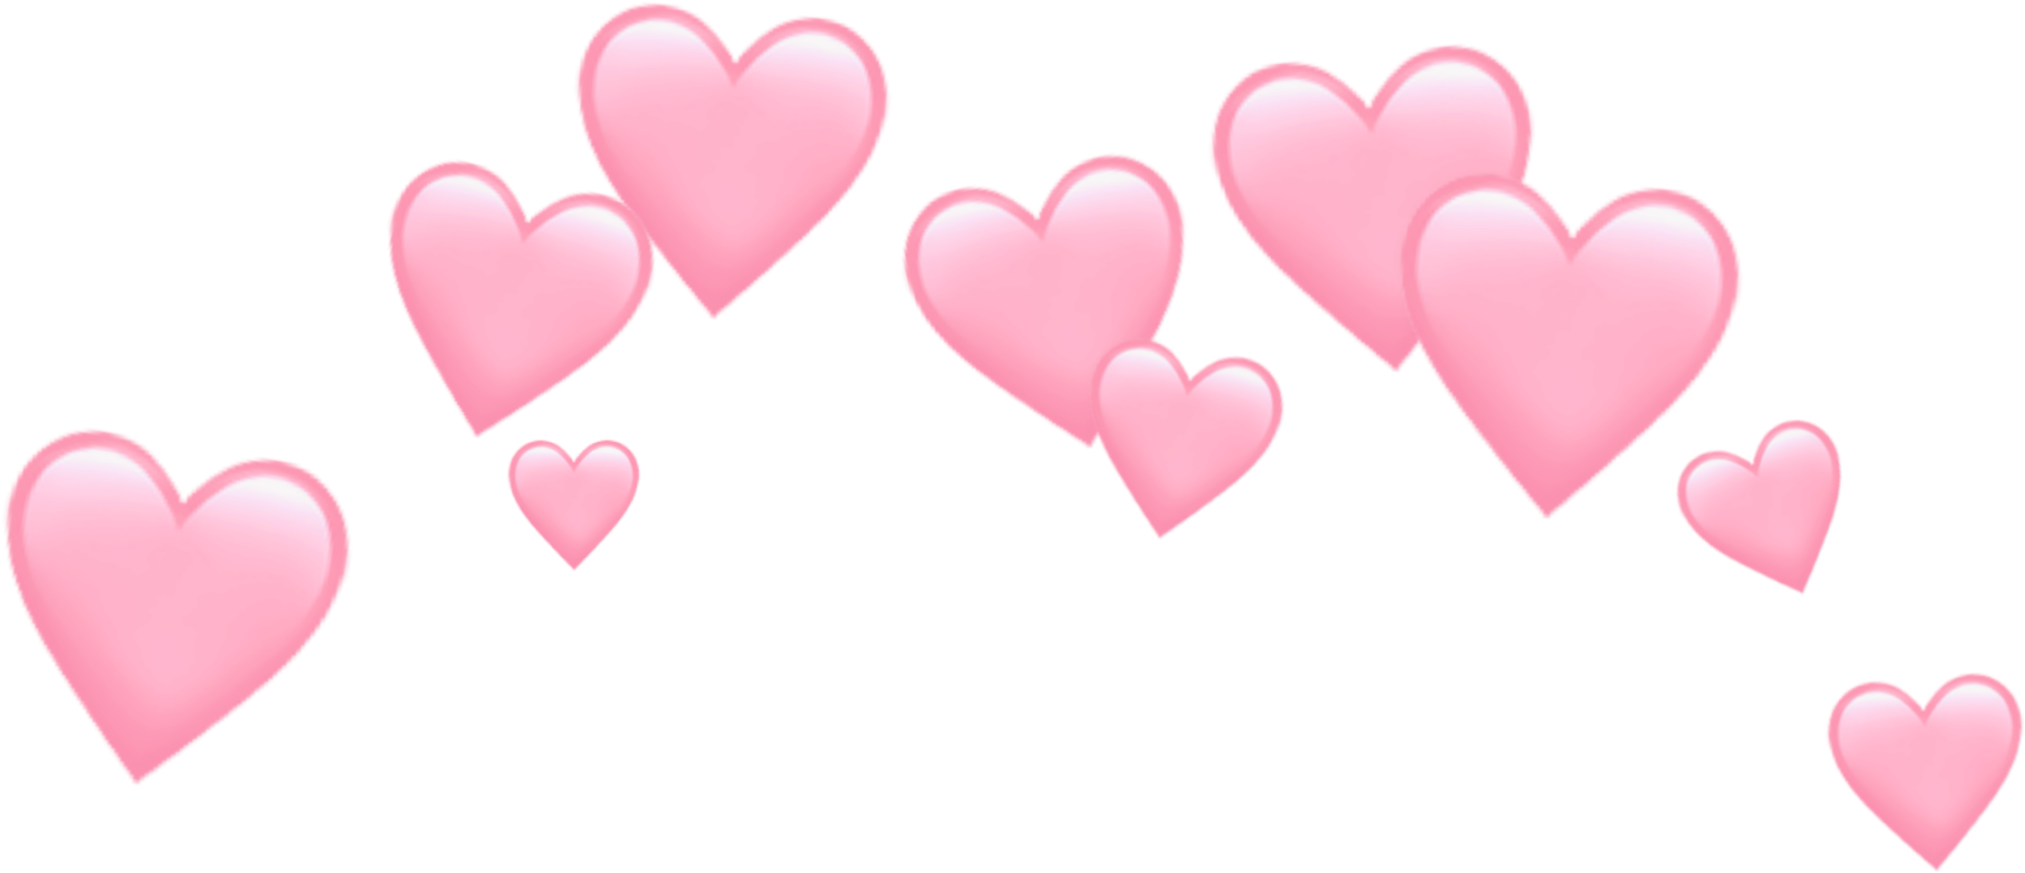 Pink Heart Crown PNG High-Quality Image